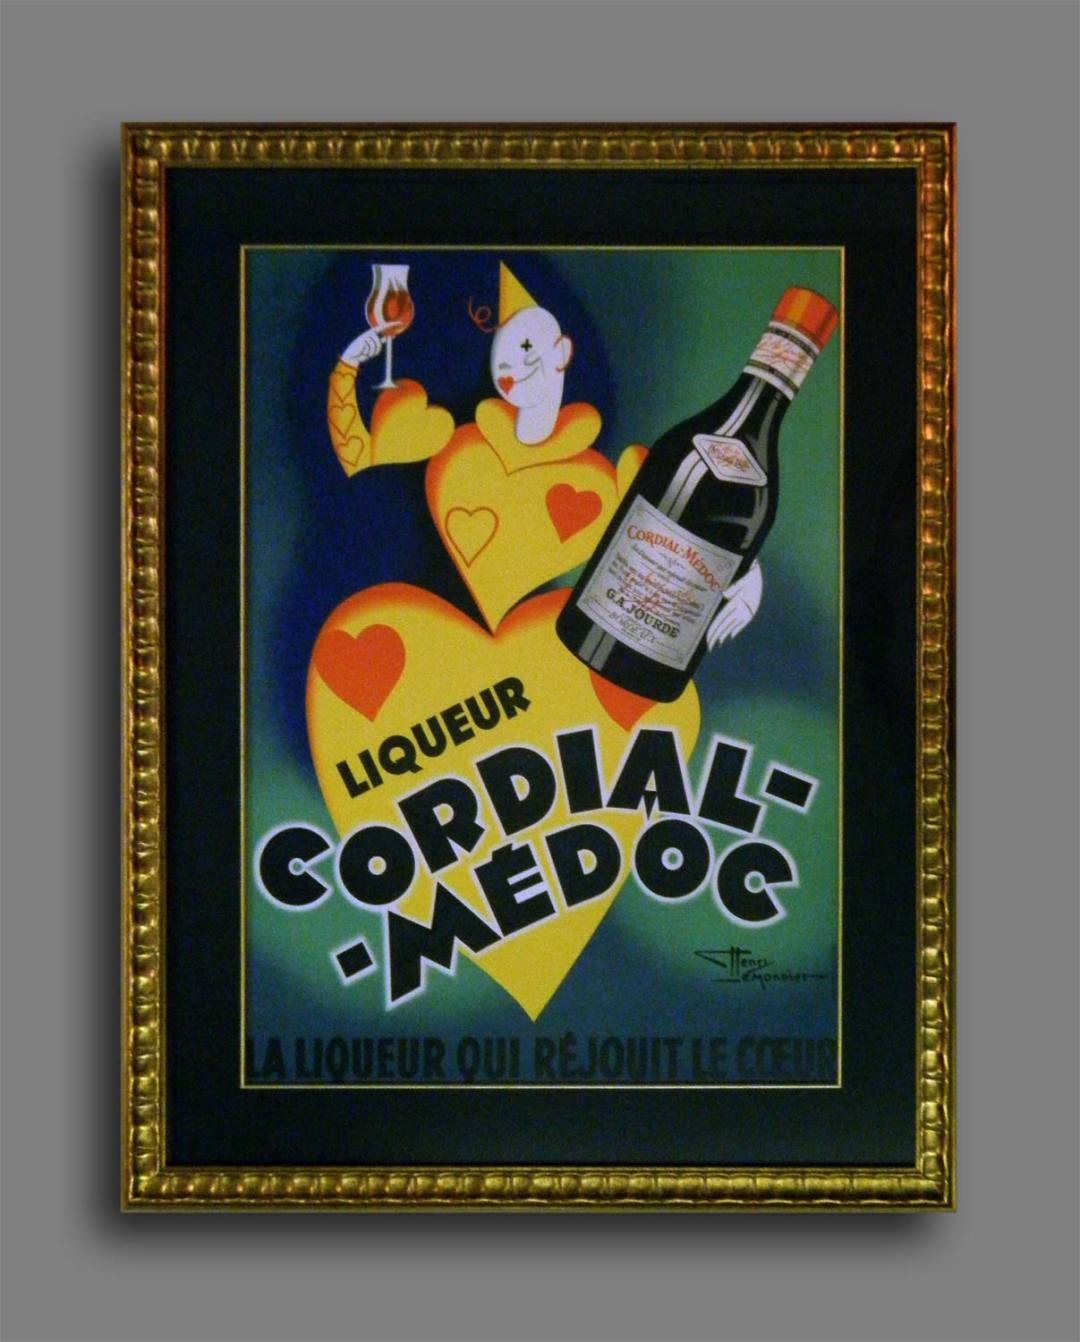 Cordial Medoc Advertising